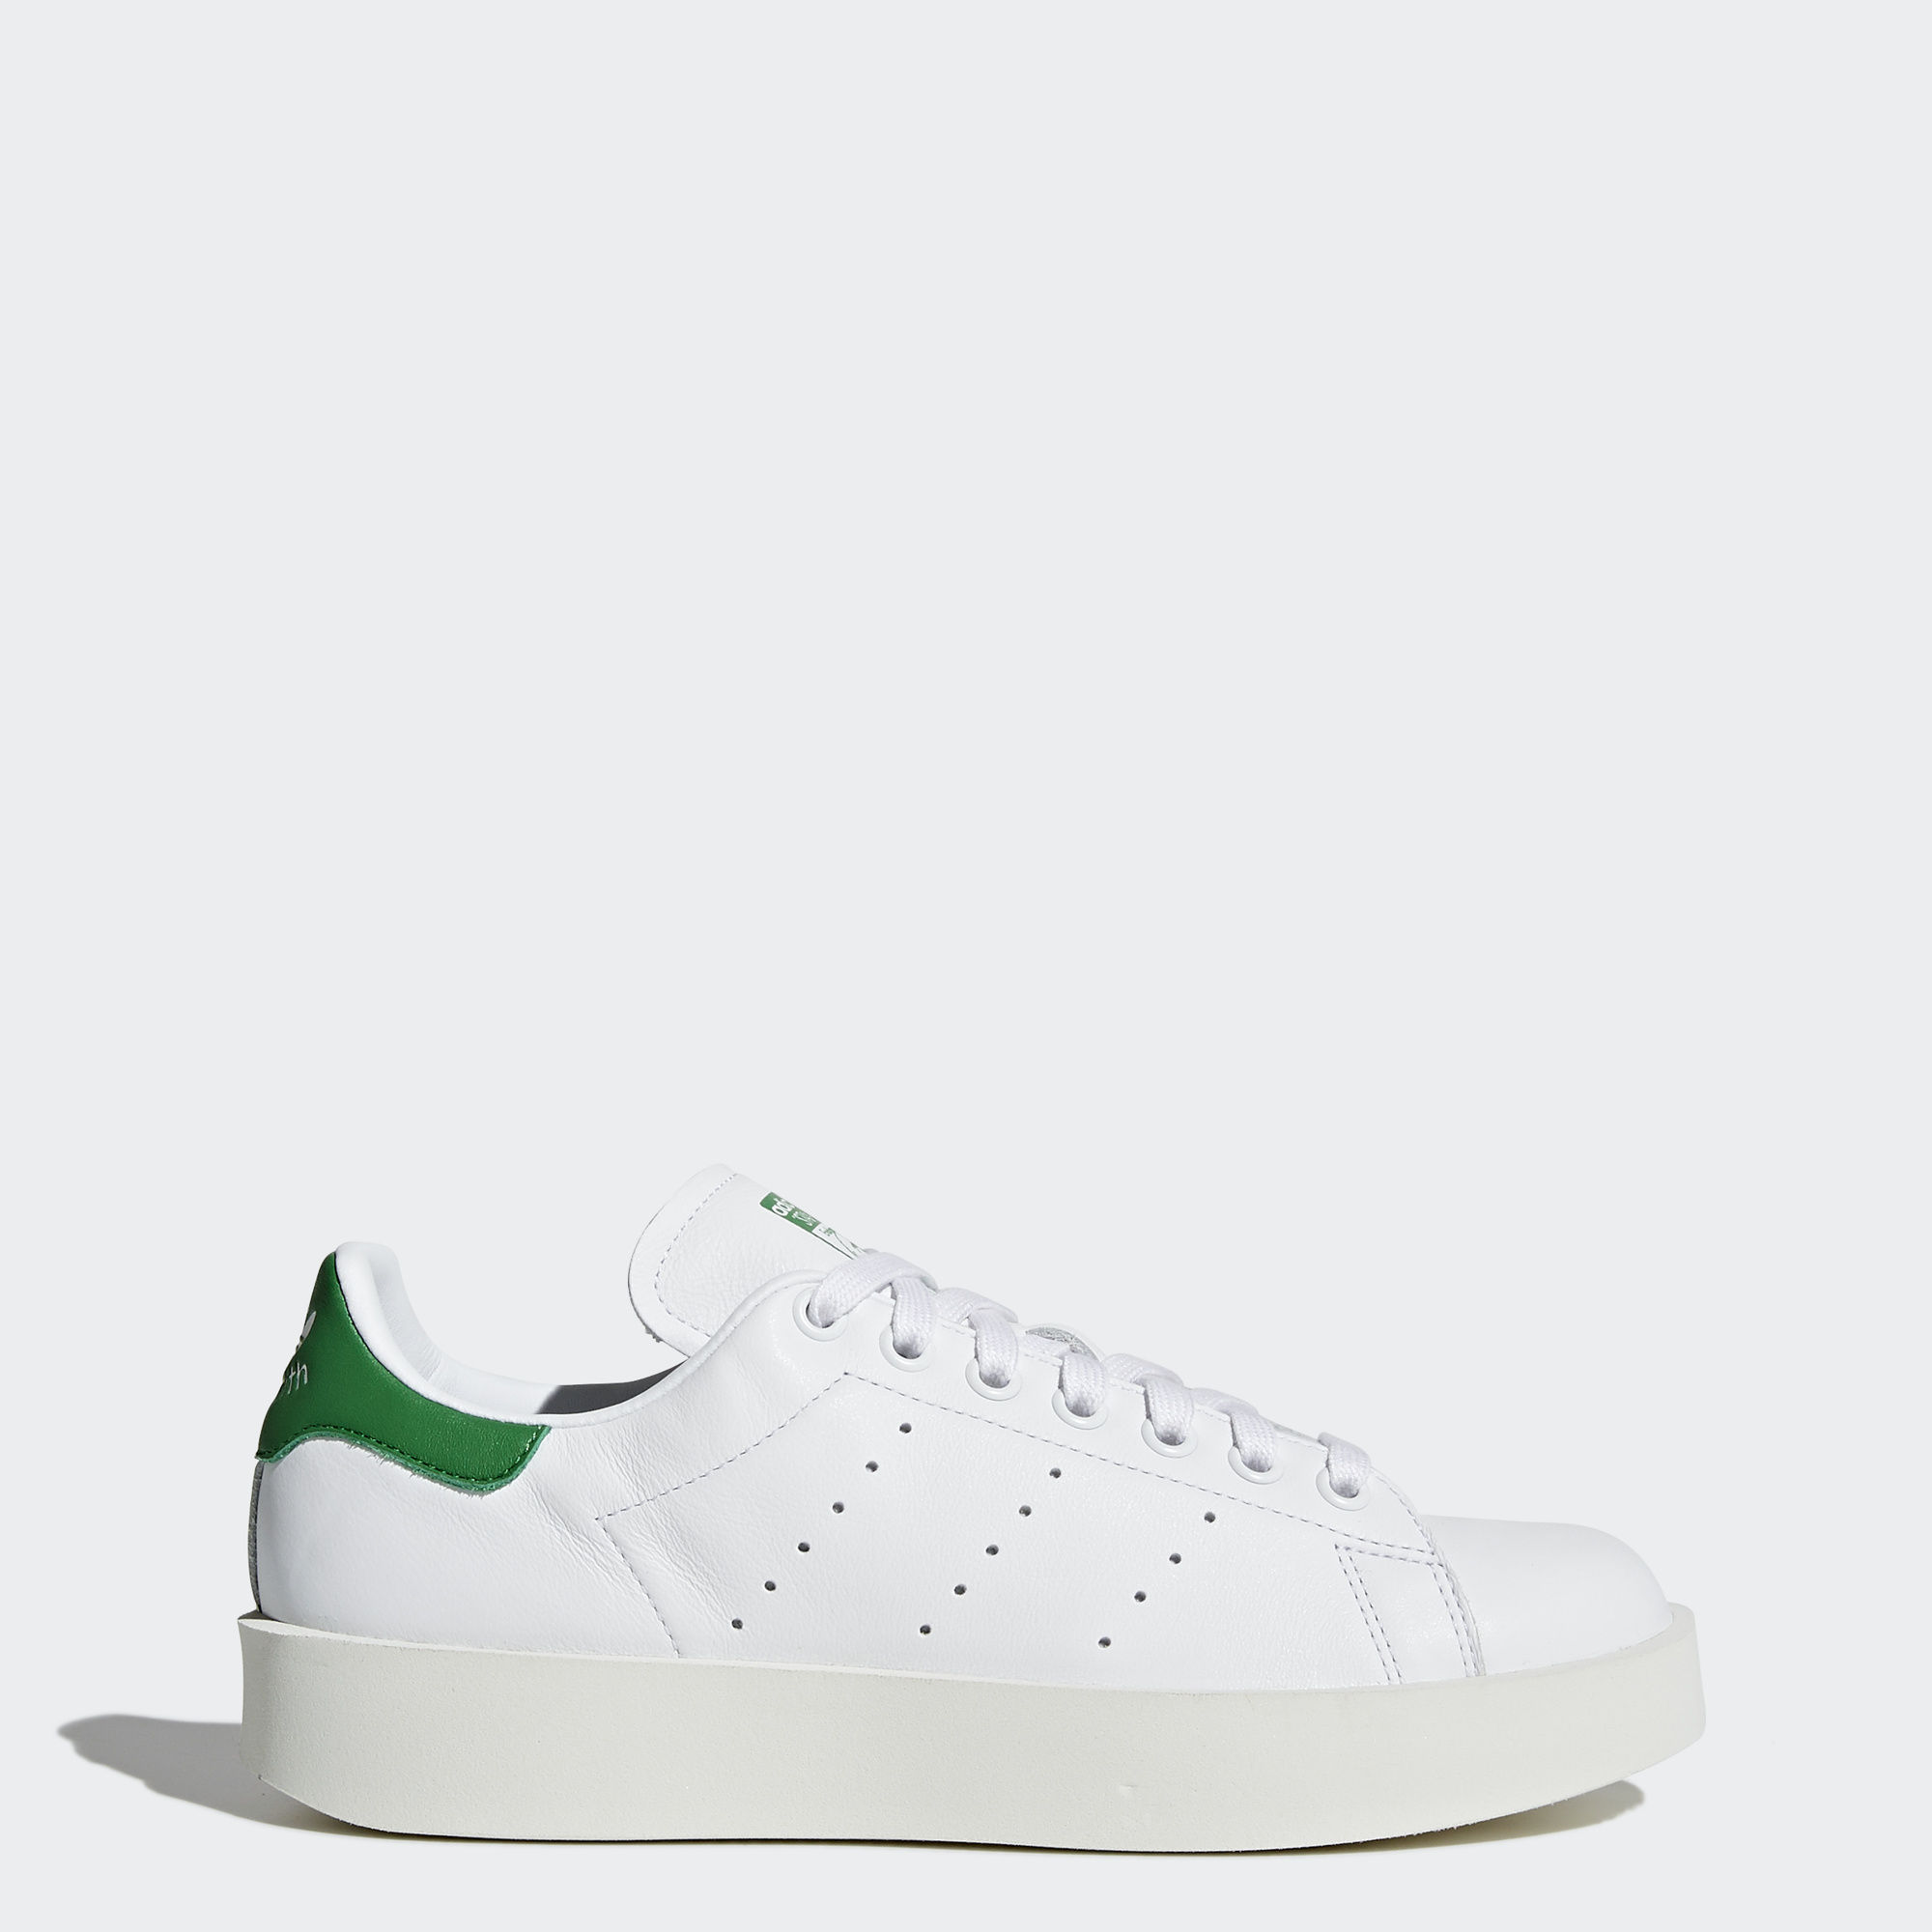 adidas stan smith chaussures femme